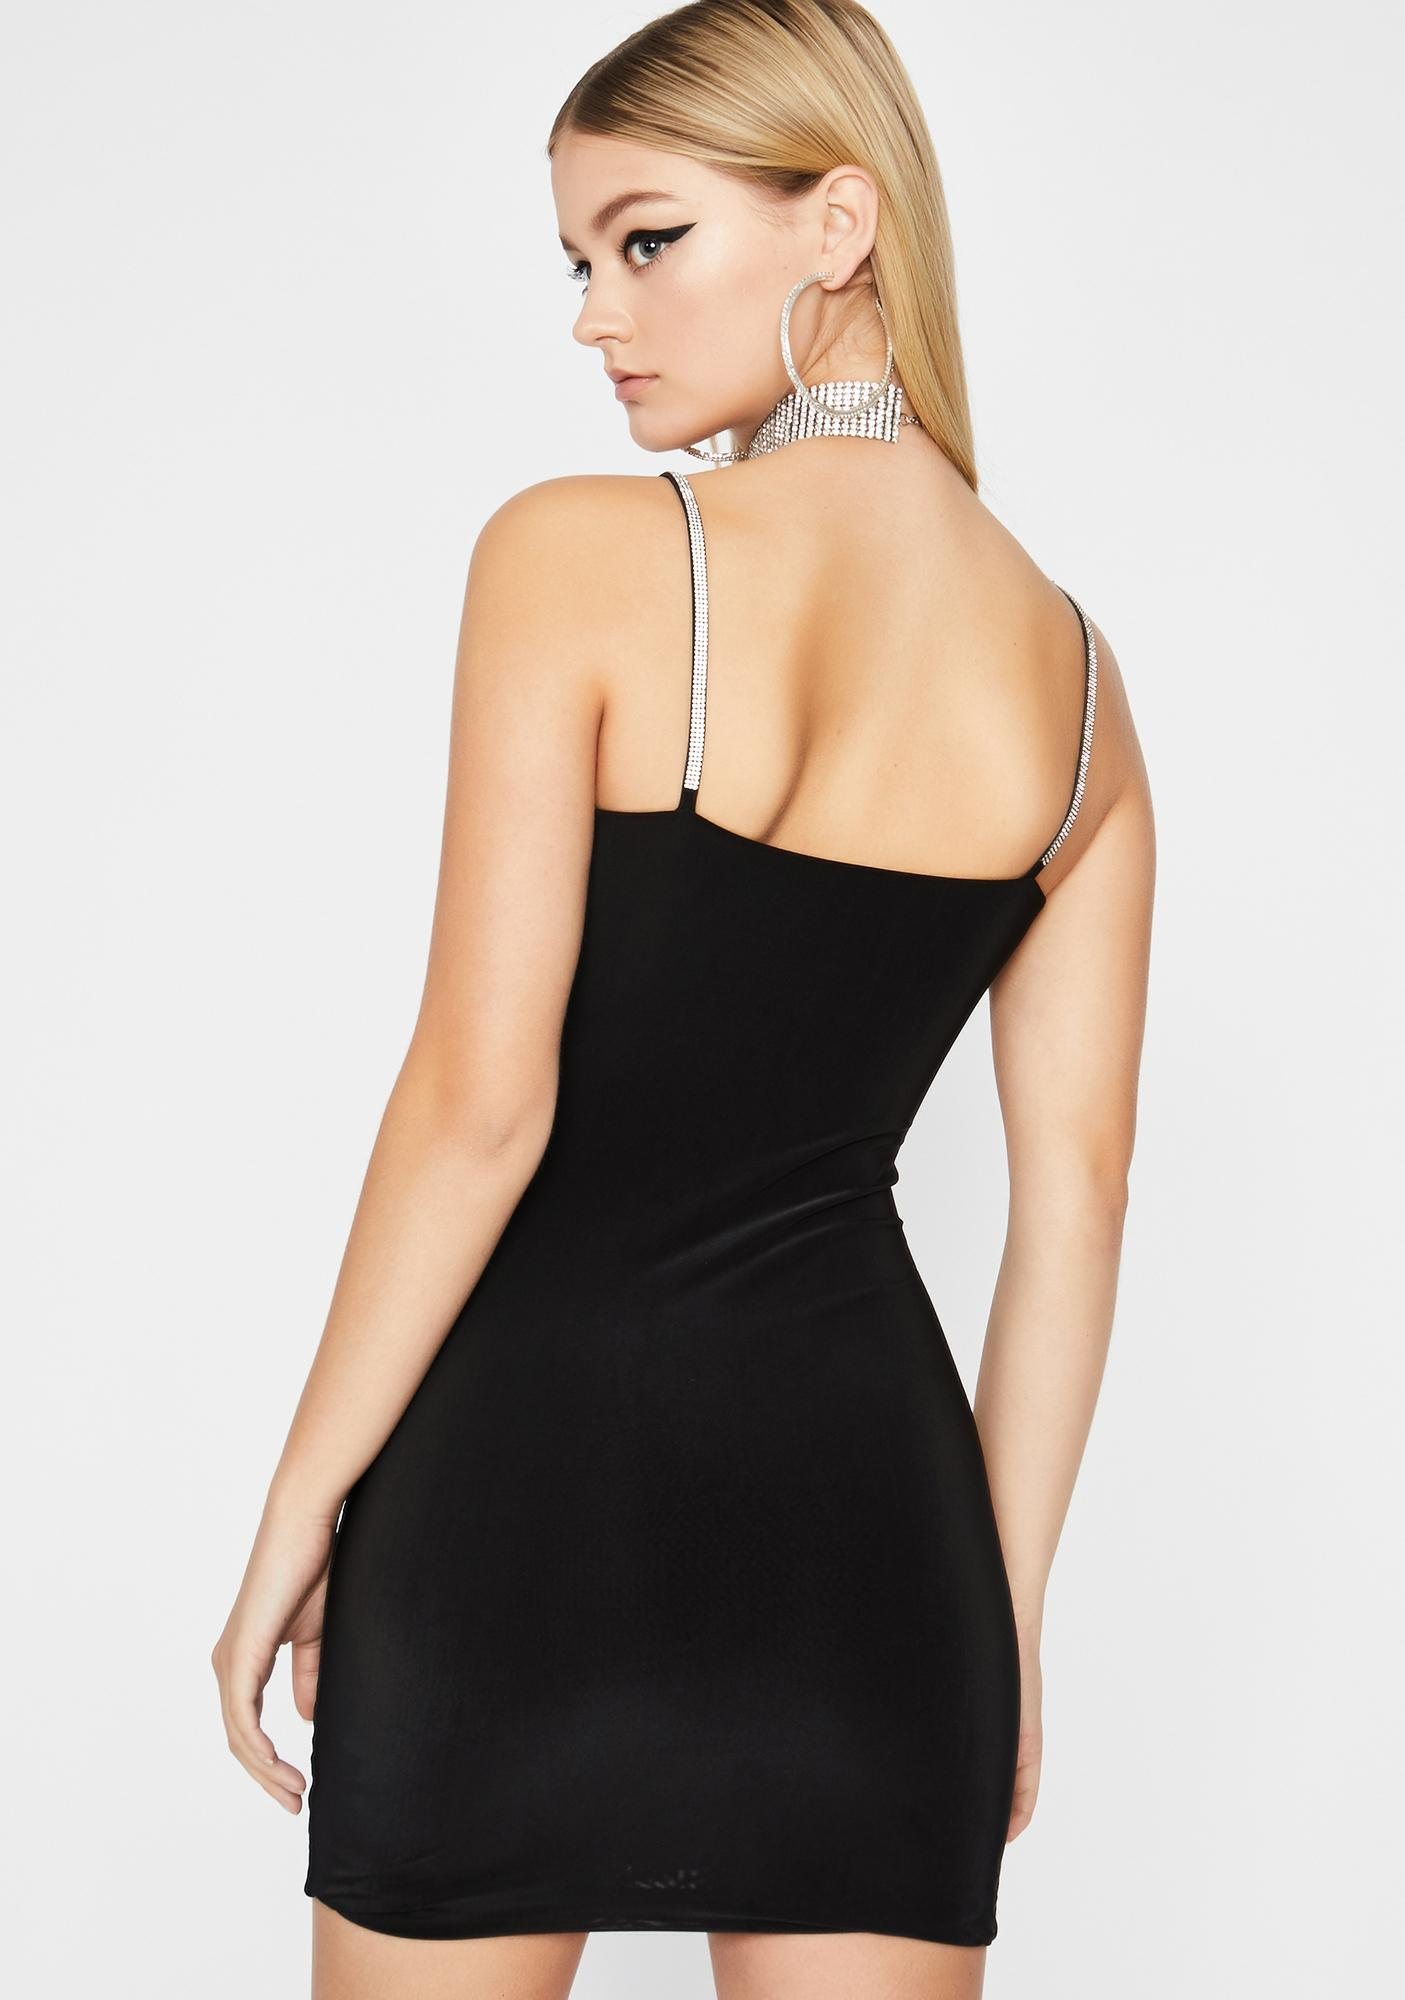 Can't Deny It Bodycon Dress